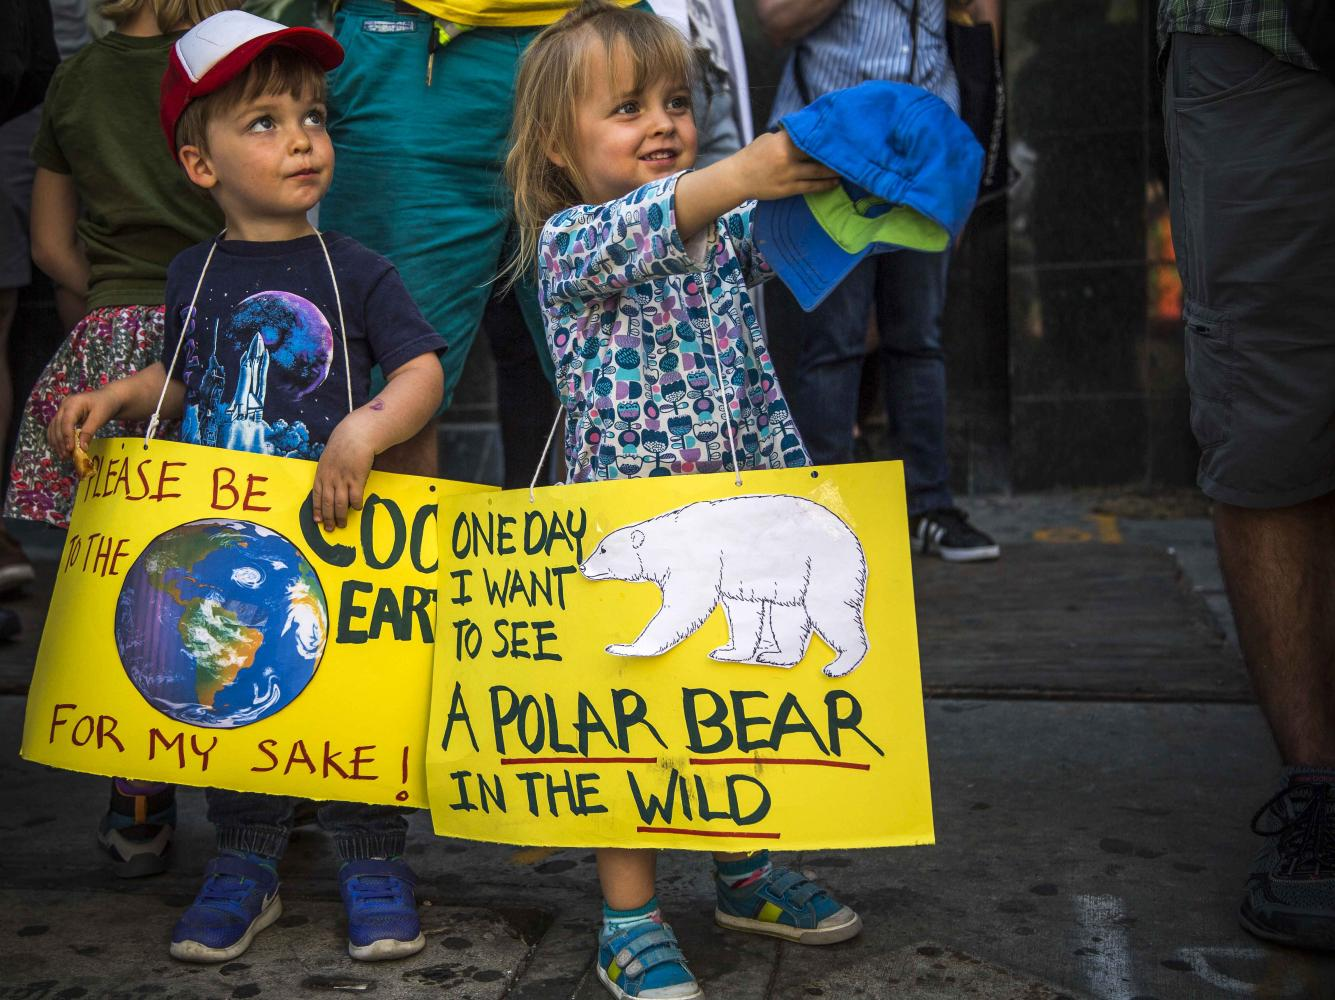 Twins Matthew (left) and Vanessa (right) Bell anxiously wait for the March for Science event to begin while holding signs in Pershing Square in Downtown Los Angles California, on Saturday April 22, 2017. Matthew Martin.